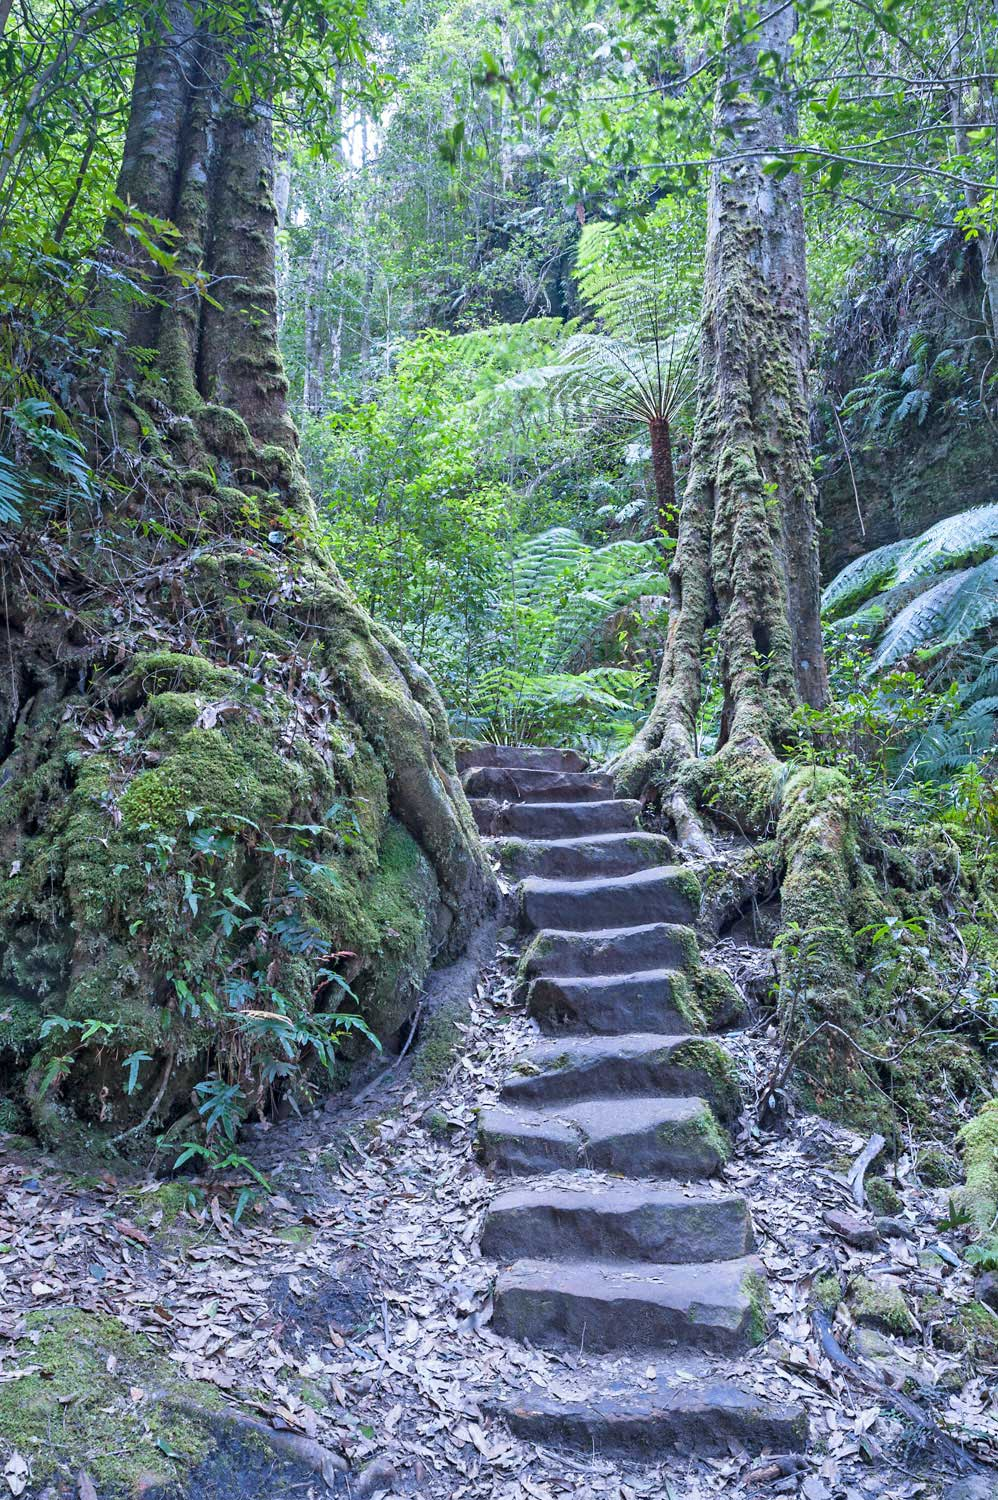 Warren-Hinder-LR-Stairs-in-Rainforest-Grand-Canyon.jpg